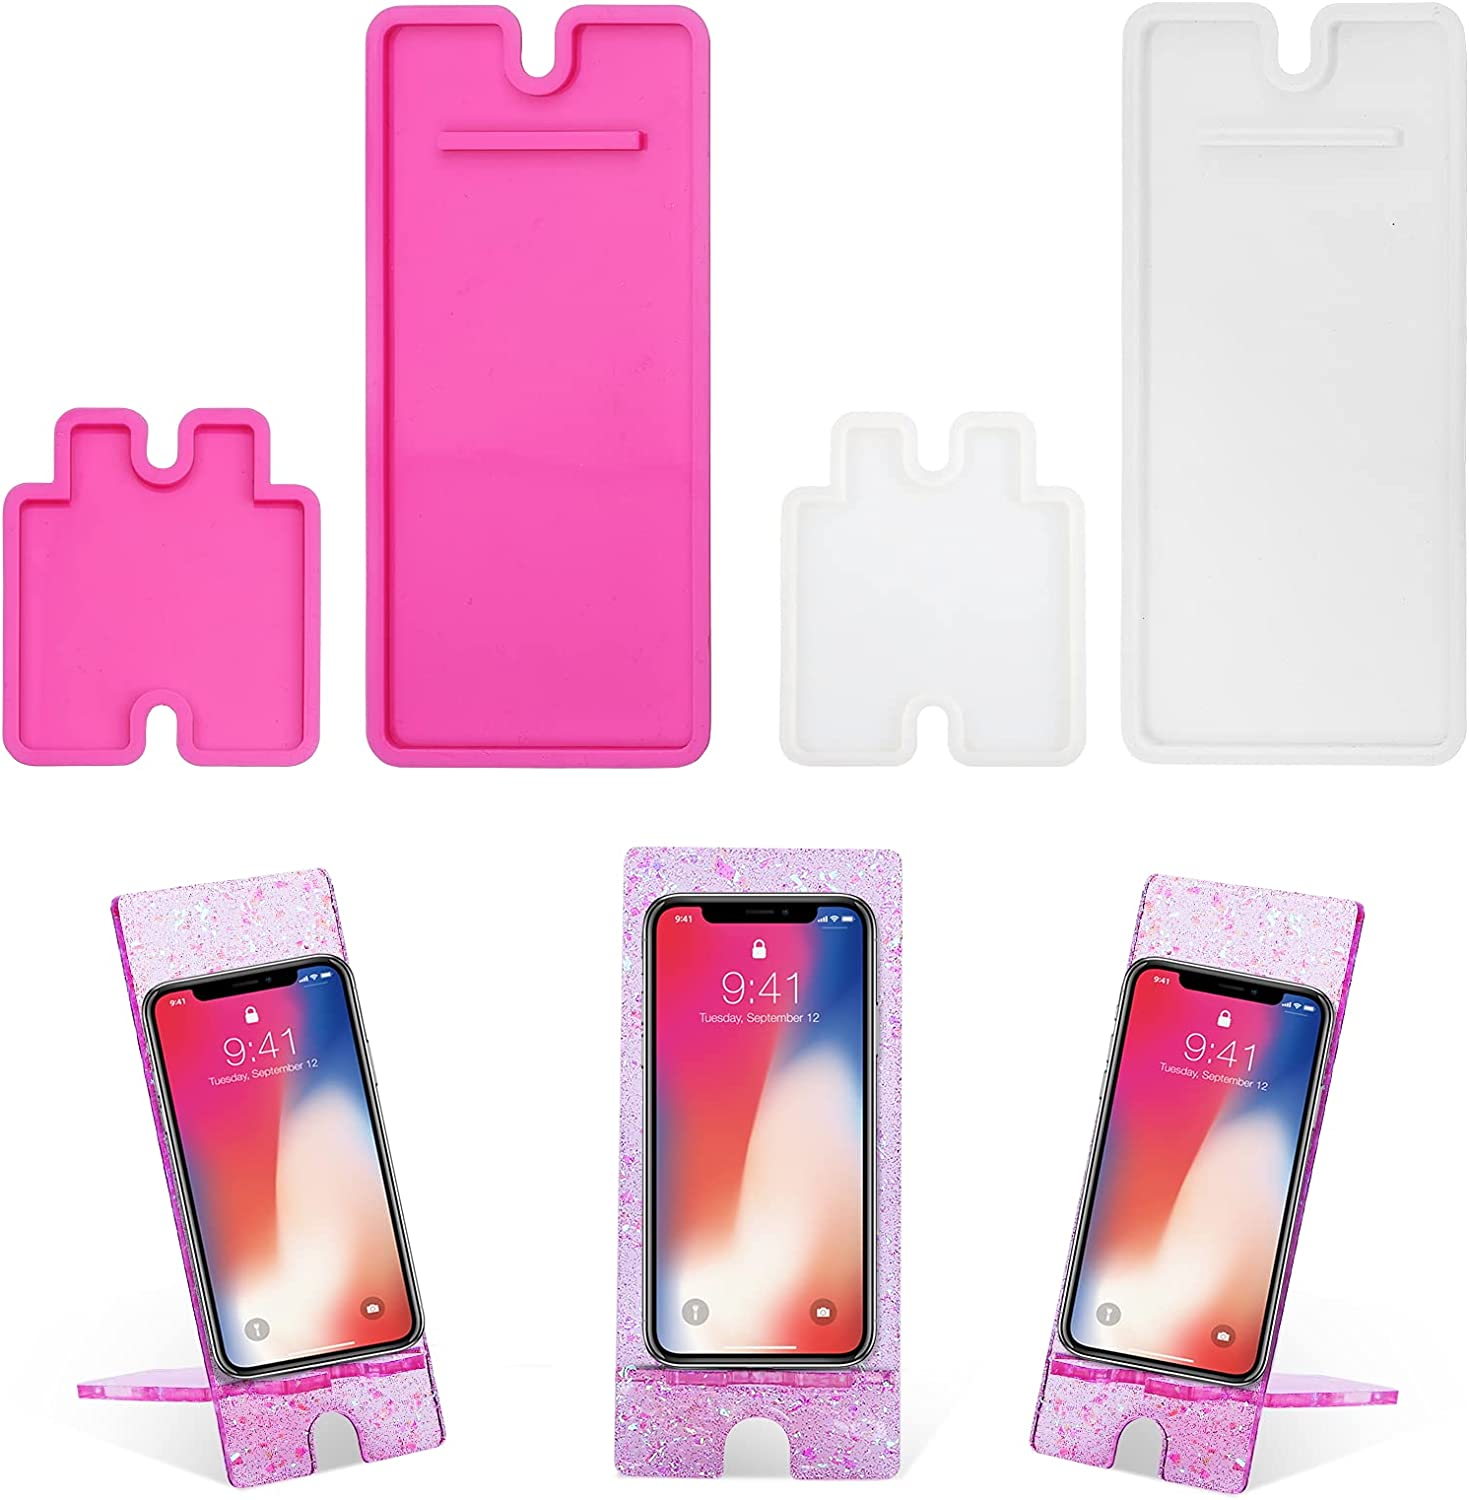 4pcs Phone Stand Resin Molds Mobile Silicone Outlet ☆ Free Shipping Kit Bundle Ho Indefinitely